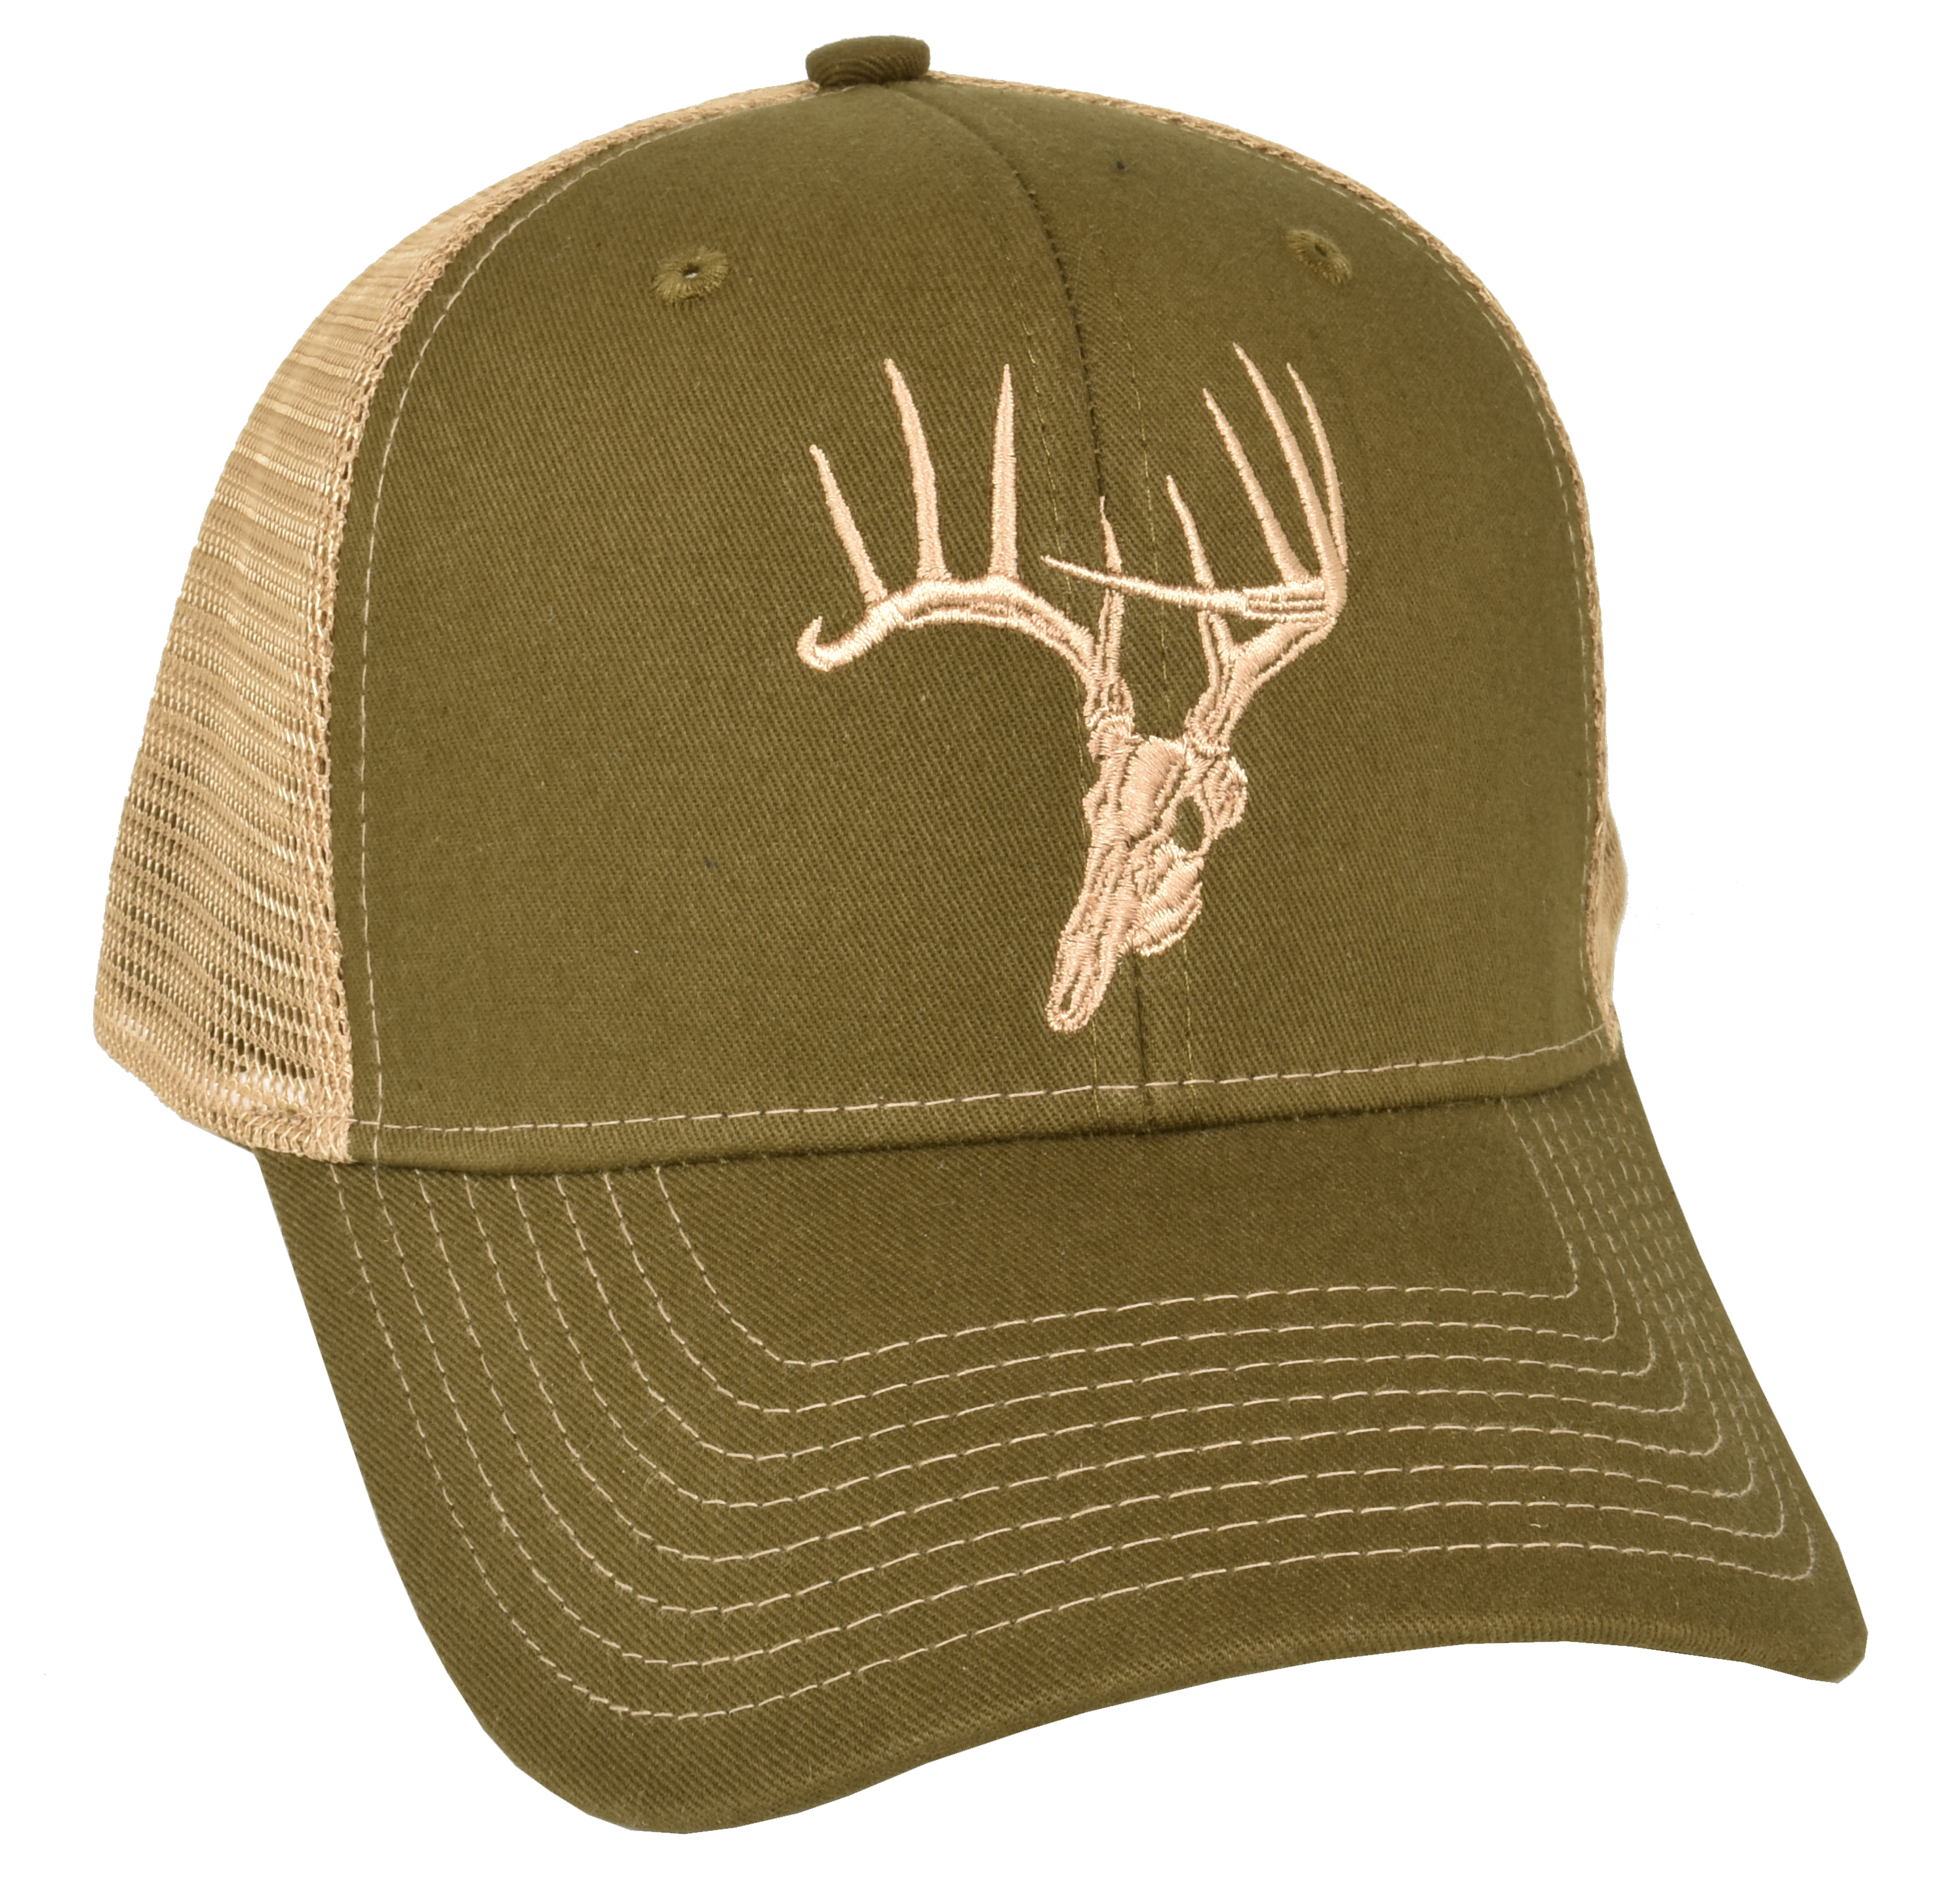 72fcc671e8a Skullz Outdoors Embroidered Cap olive tan mesh back - Skullz Outdoors